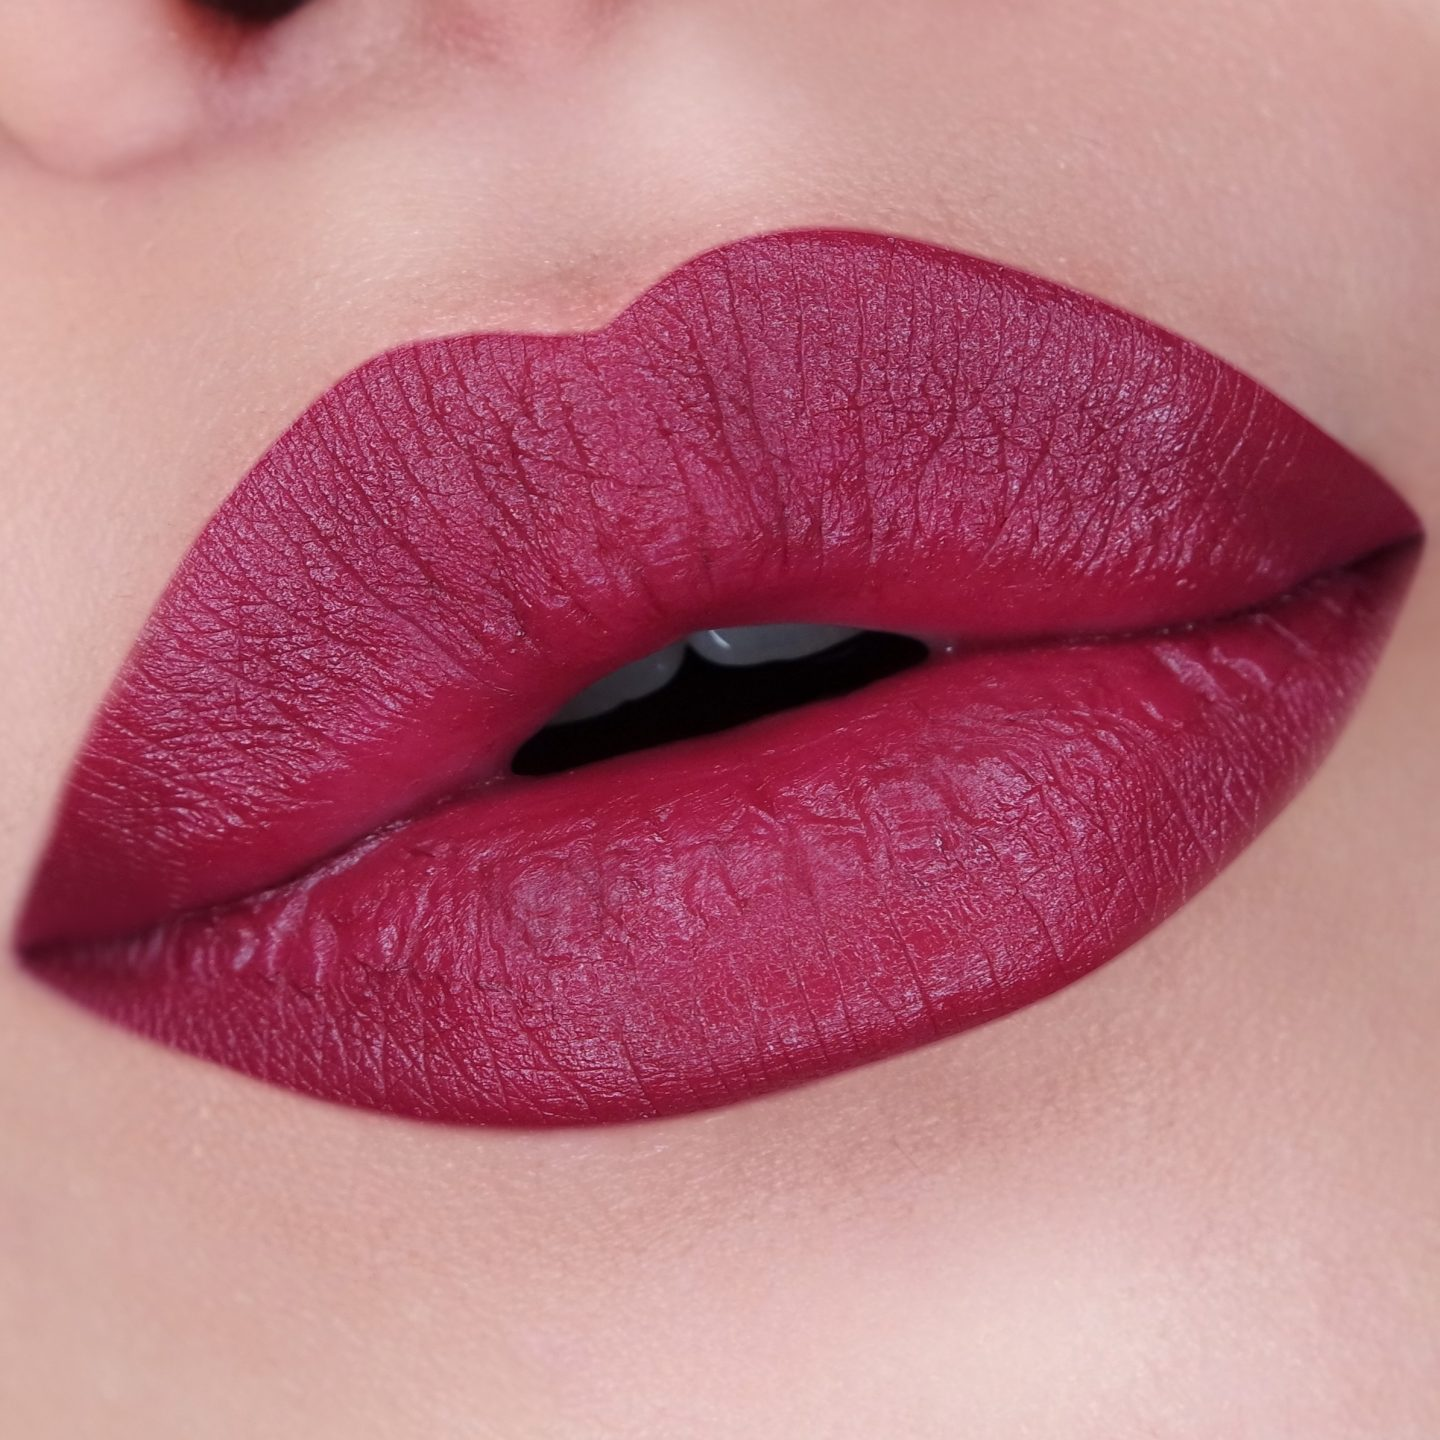 Estée Lauder Pure Color Love Lipstick in Juiced Up Swatch